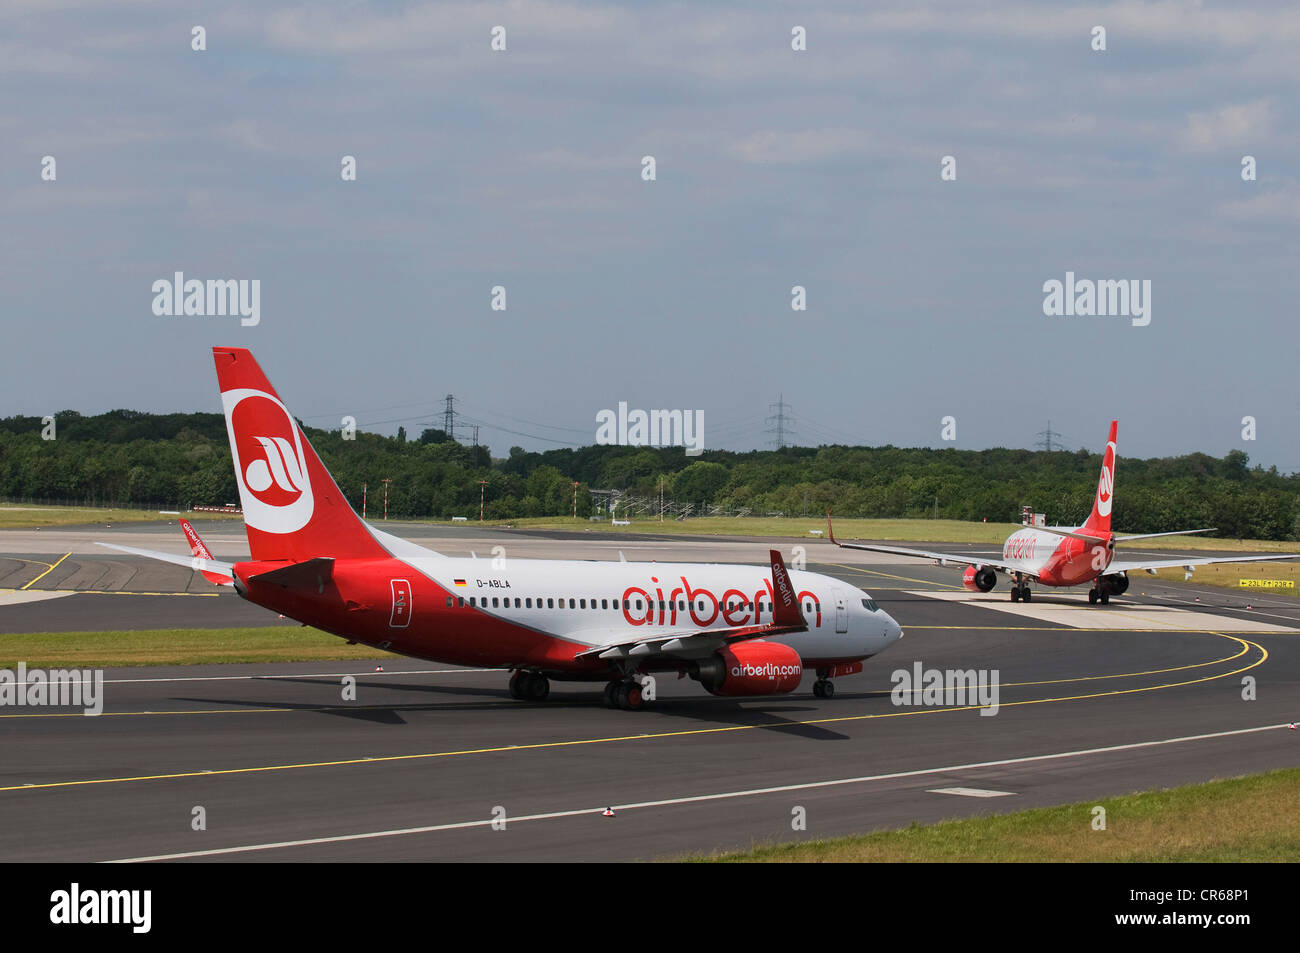 Airberlin deux avions qui une courbe, l'Aéroport International de Düsseldorf, Düsseldorf, Rhénanie Photo Stock